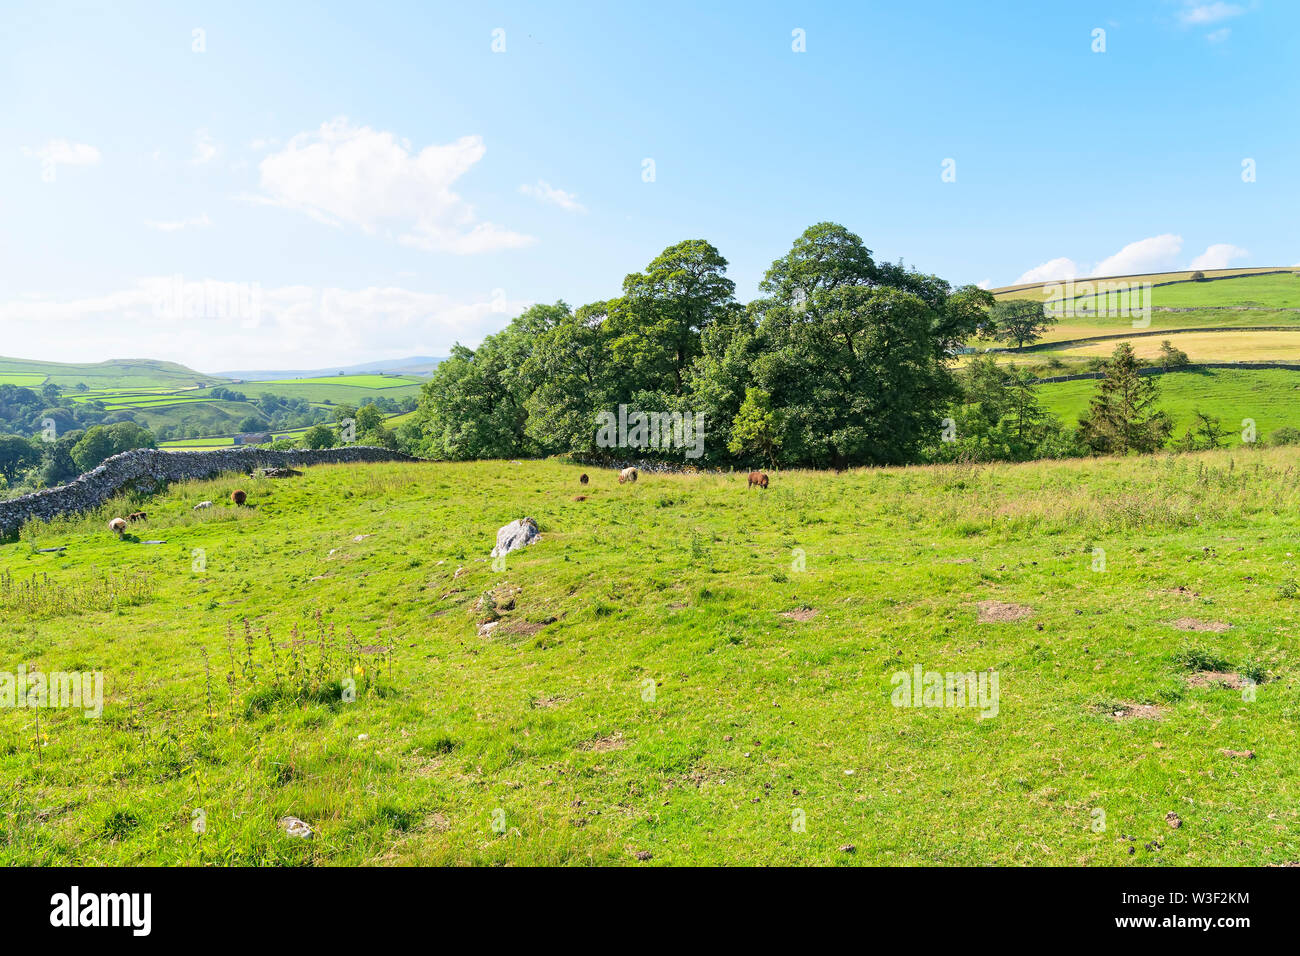 Out across the Yorkshire Dales on a bright, sunny, summers day. - Stock Image